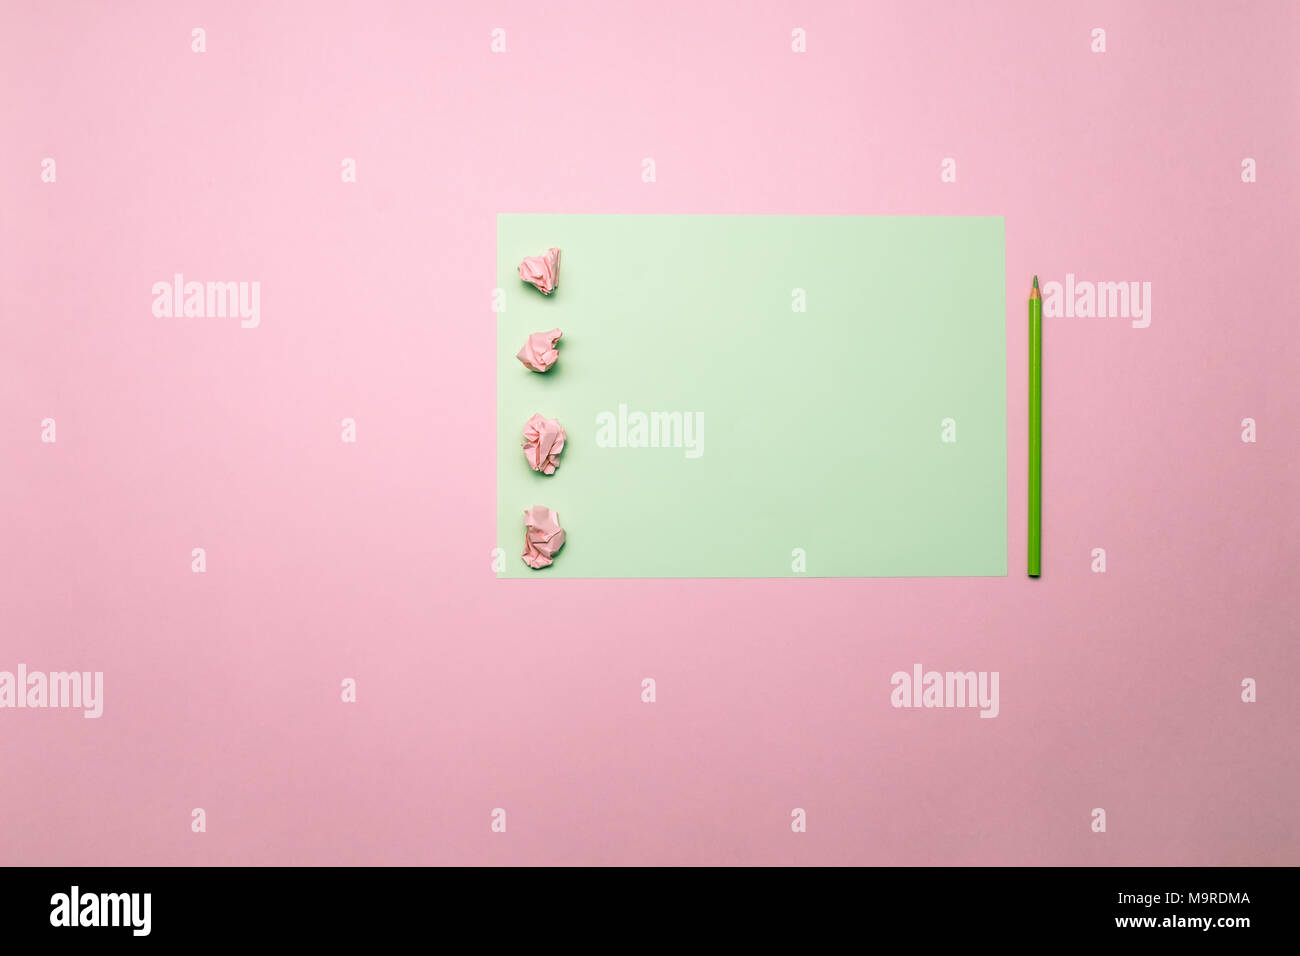 Two tone pink and green contrast color paper background with crumpled balls and pencil. Empty blank for text, design and advertising. - Stock Image